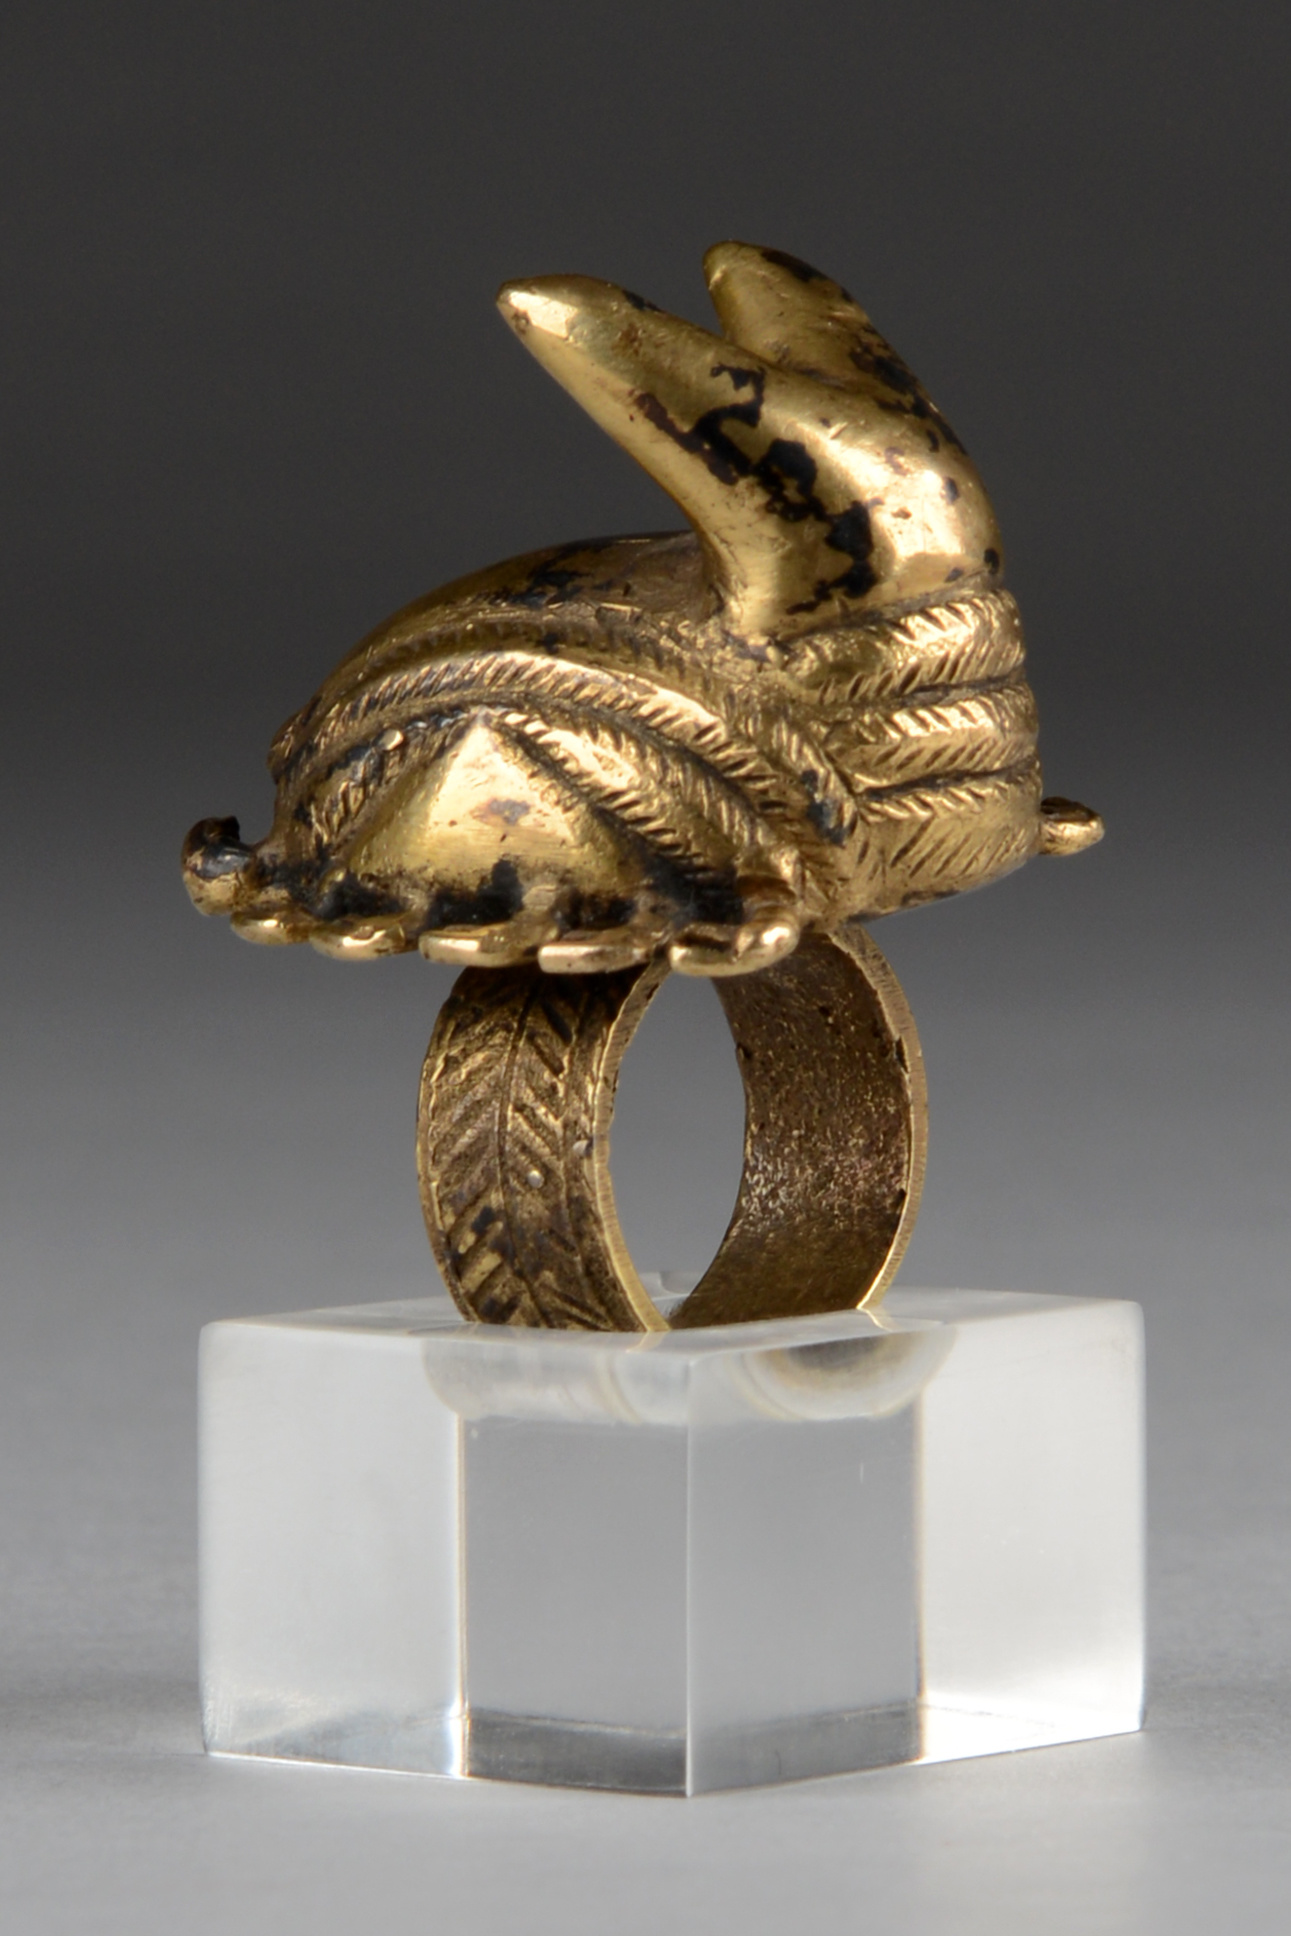 Chief's ring with scorpion